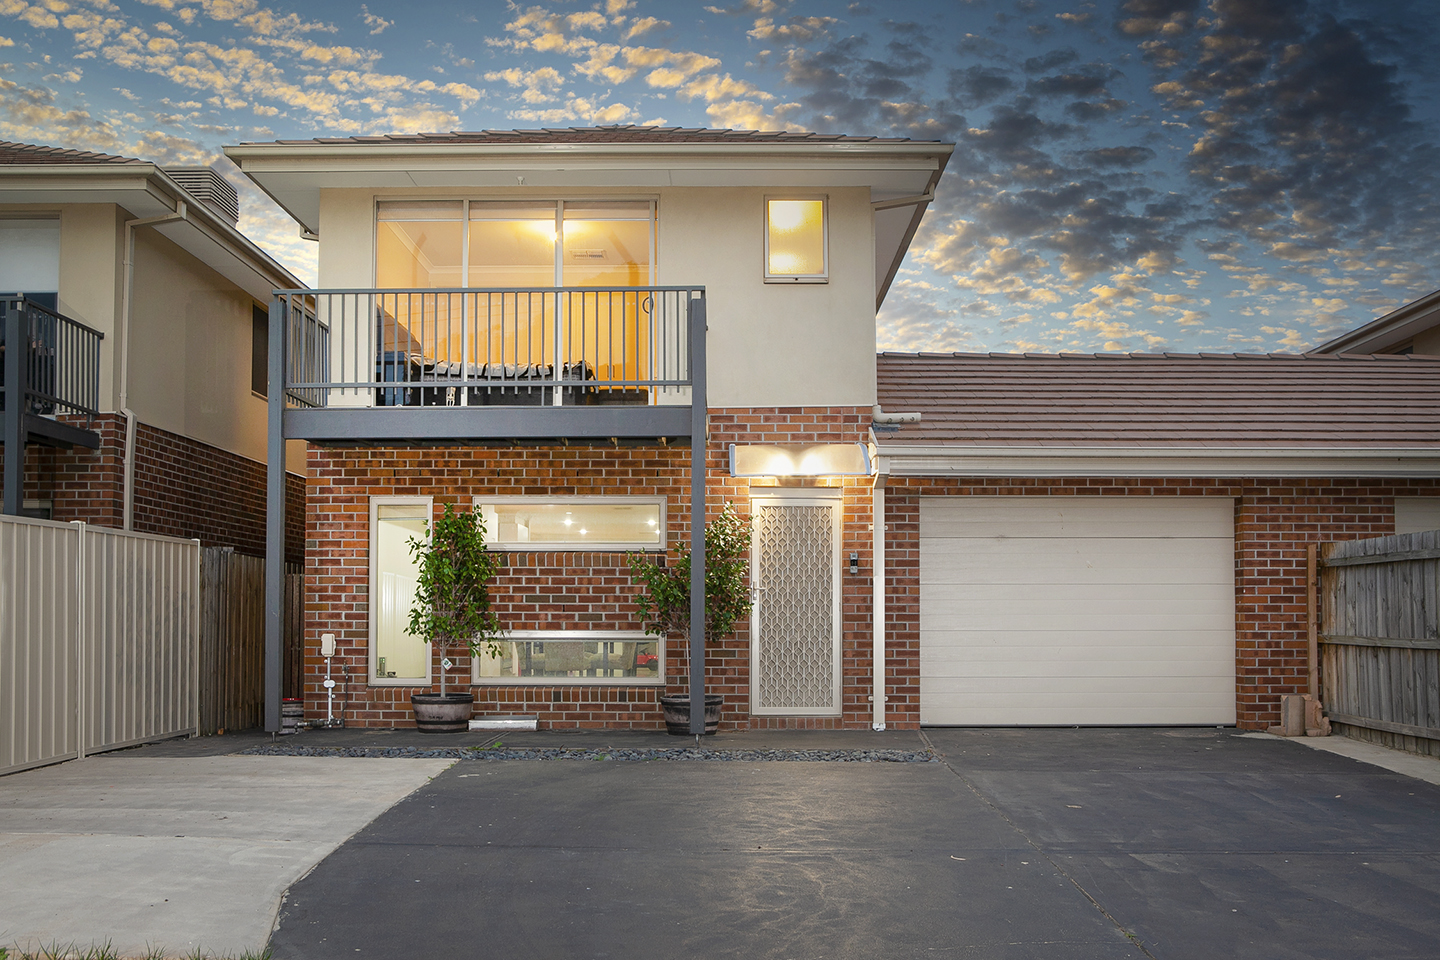 2/19 Elizabeth street, Cranbourne north.